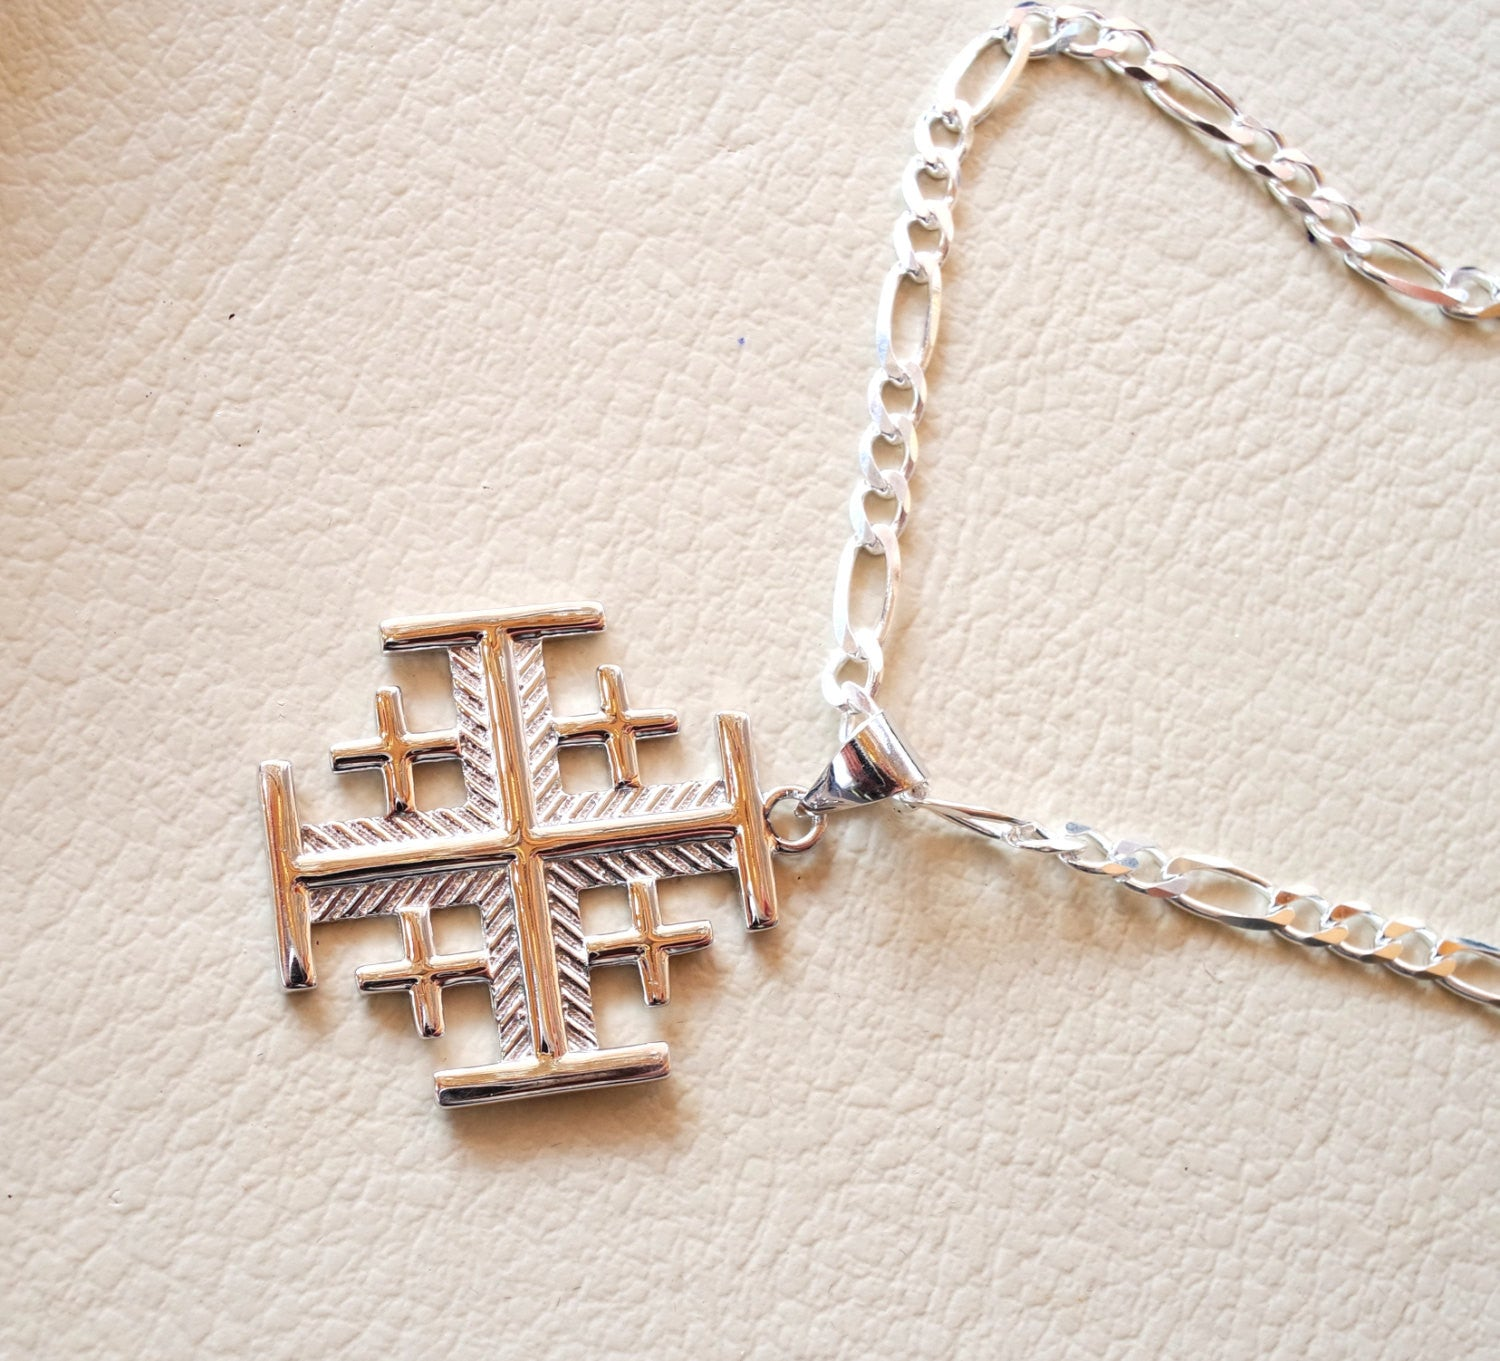 Jerusalem cross pendant with heavy chain sterling silver 925 middle eastern jewelry christianity vintage handmade heavy fast shipping